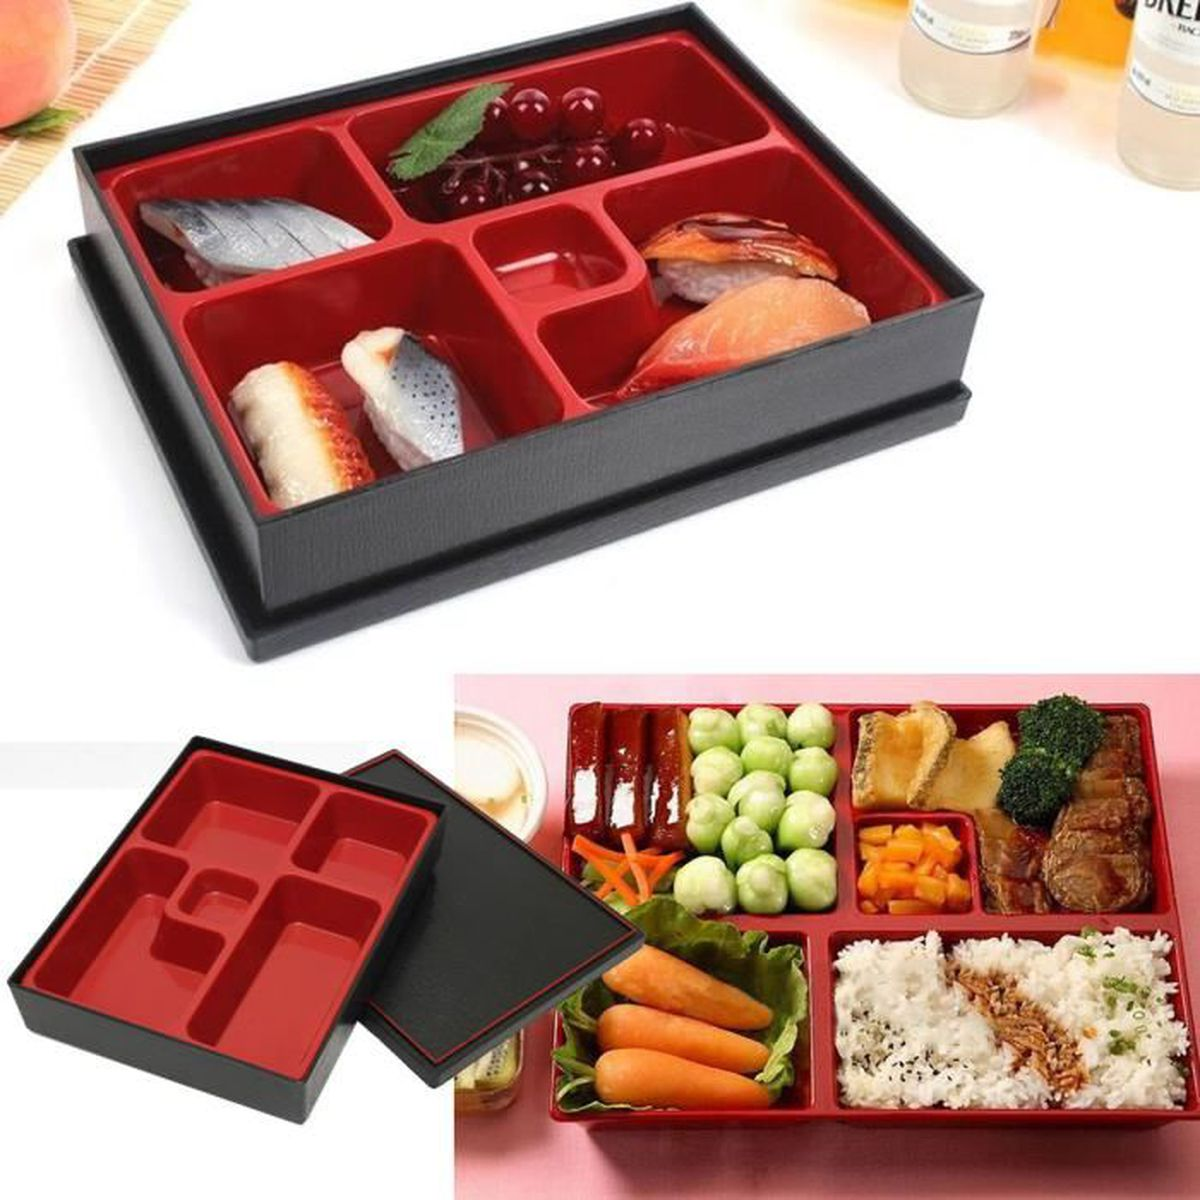 bo te repas dejeuner lunch bento box japonaise sushi lacquerware restaurant achat vente. Black Bedroom Furniture Sets. Home Design Ideas